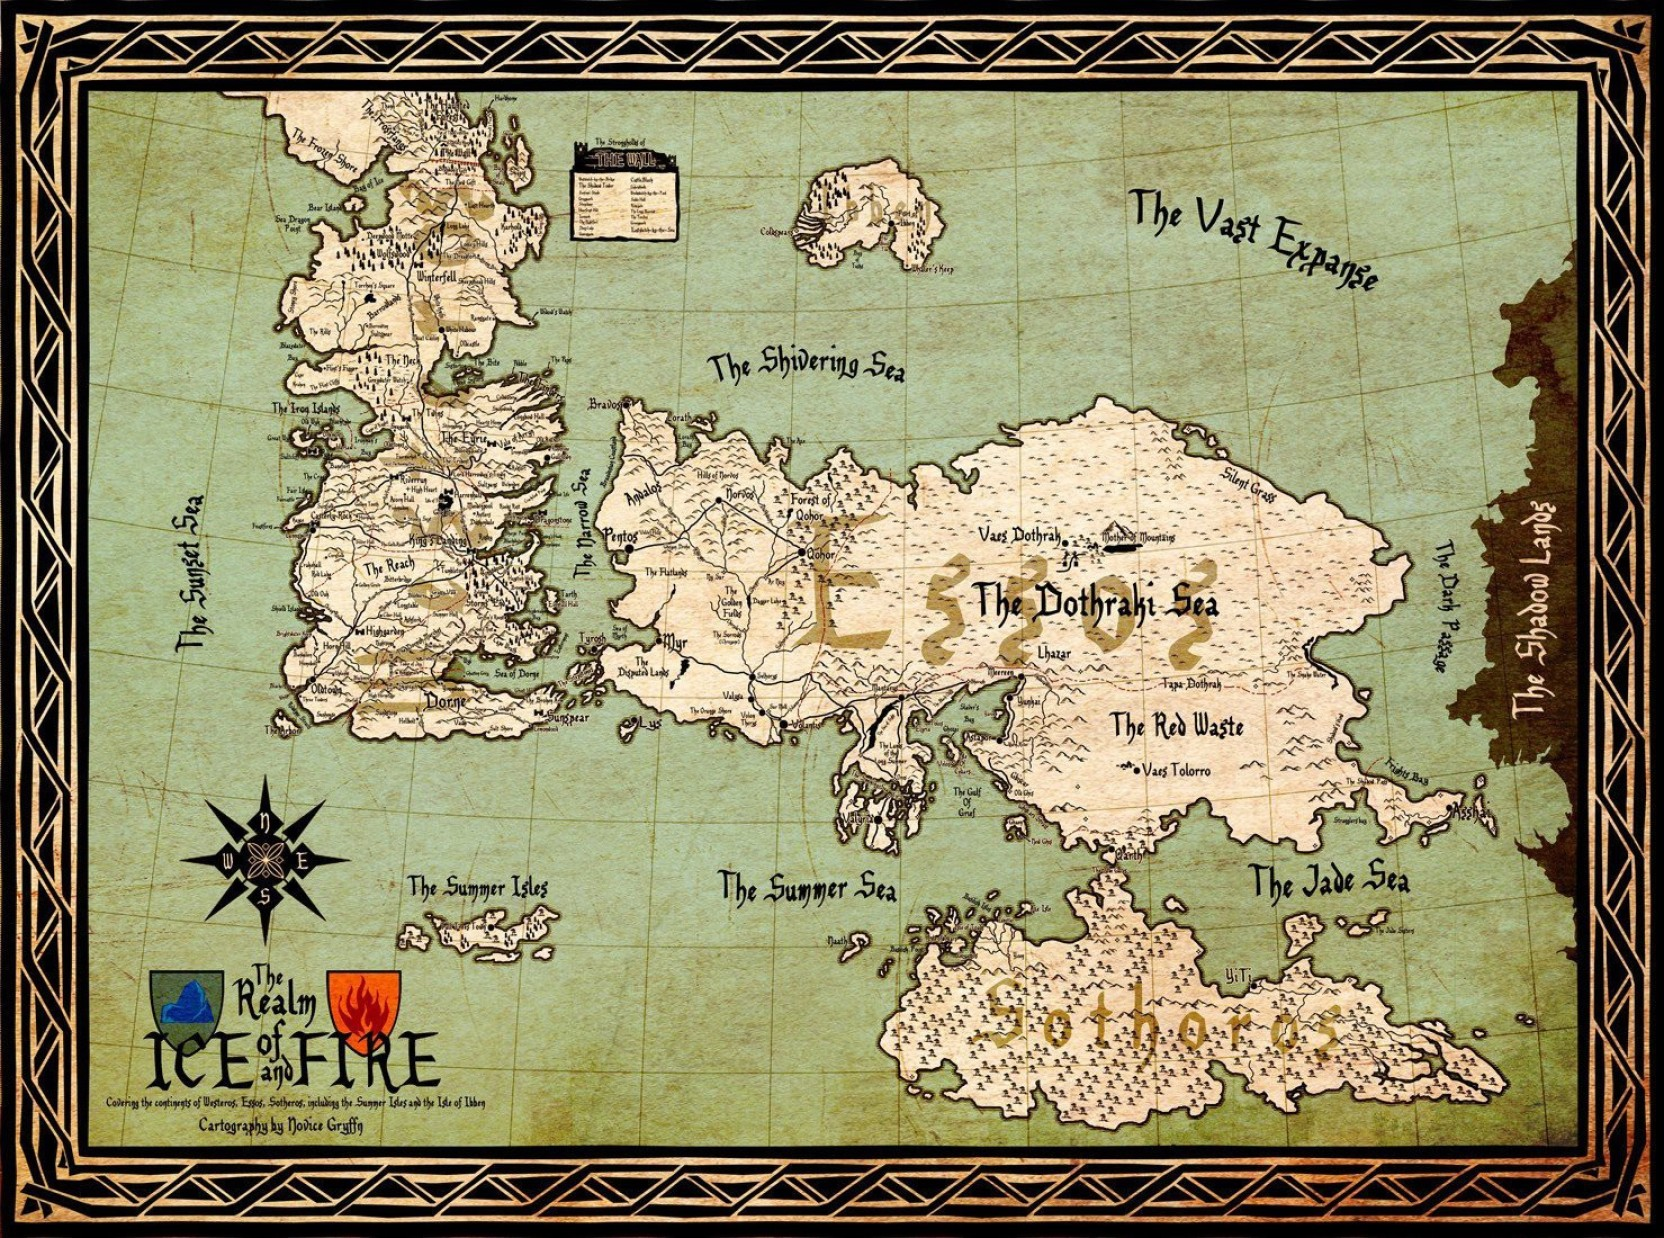 Game Of Thrones Collection - Seven Kingdoms Of Westeros Map ... Seven Kingdoms Map on seven colonies map, game of thrones map, luxembourg map, empire southeast asia vietnam map, saga map, seven continents map, seven counties map, seven regions map, homeworld map, seven cities map, westeros map, isle of arran scotland map, etruria italy map, seven stars map, eastern europe map, britain map,